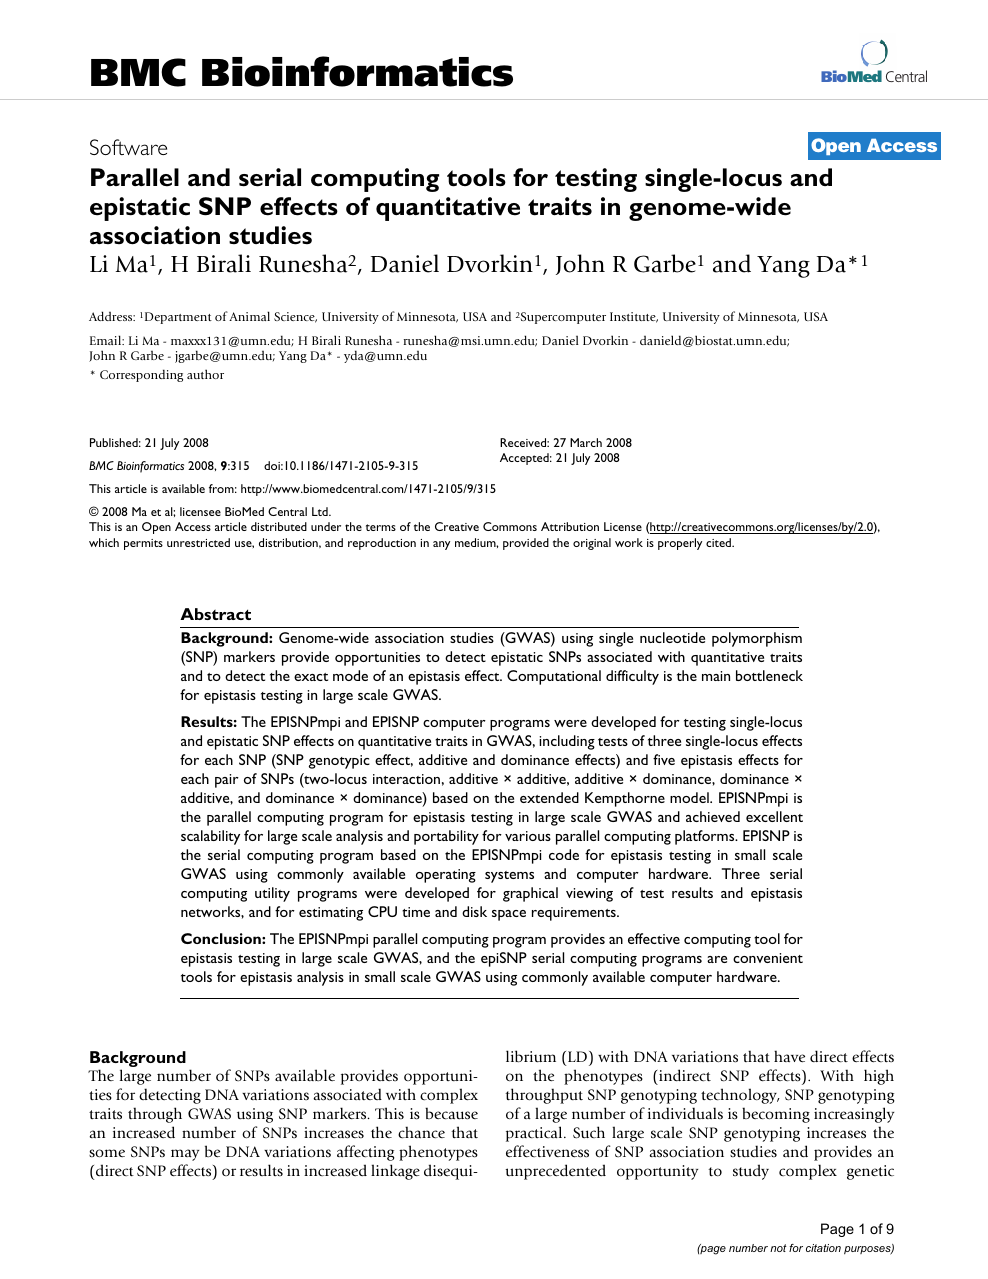 Parallel and serial computing tools for testing single-locus